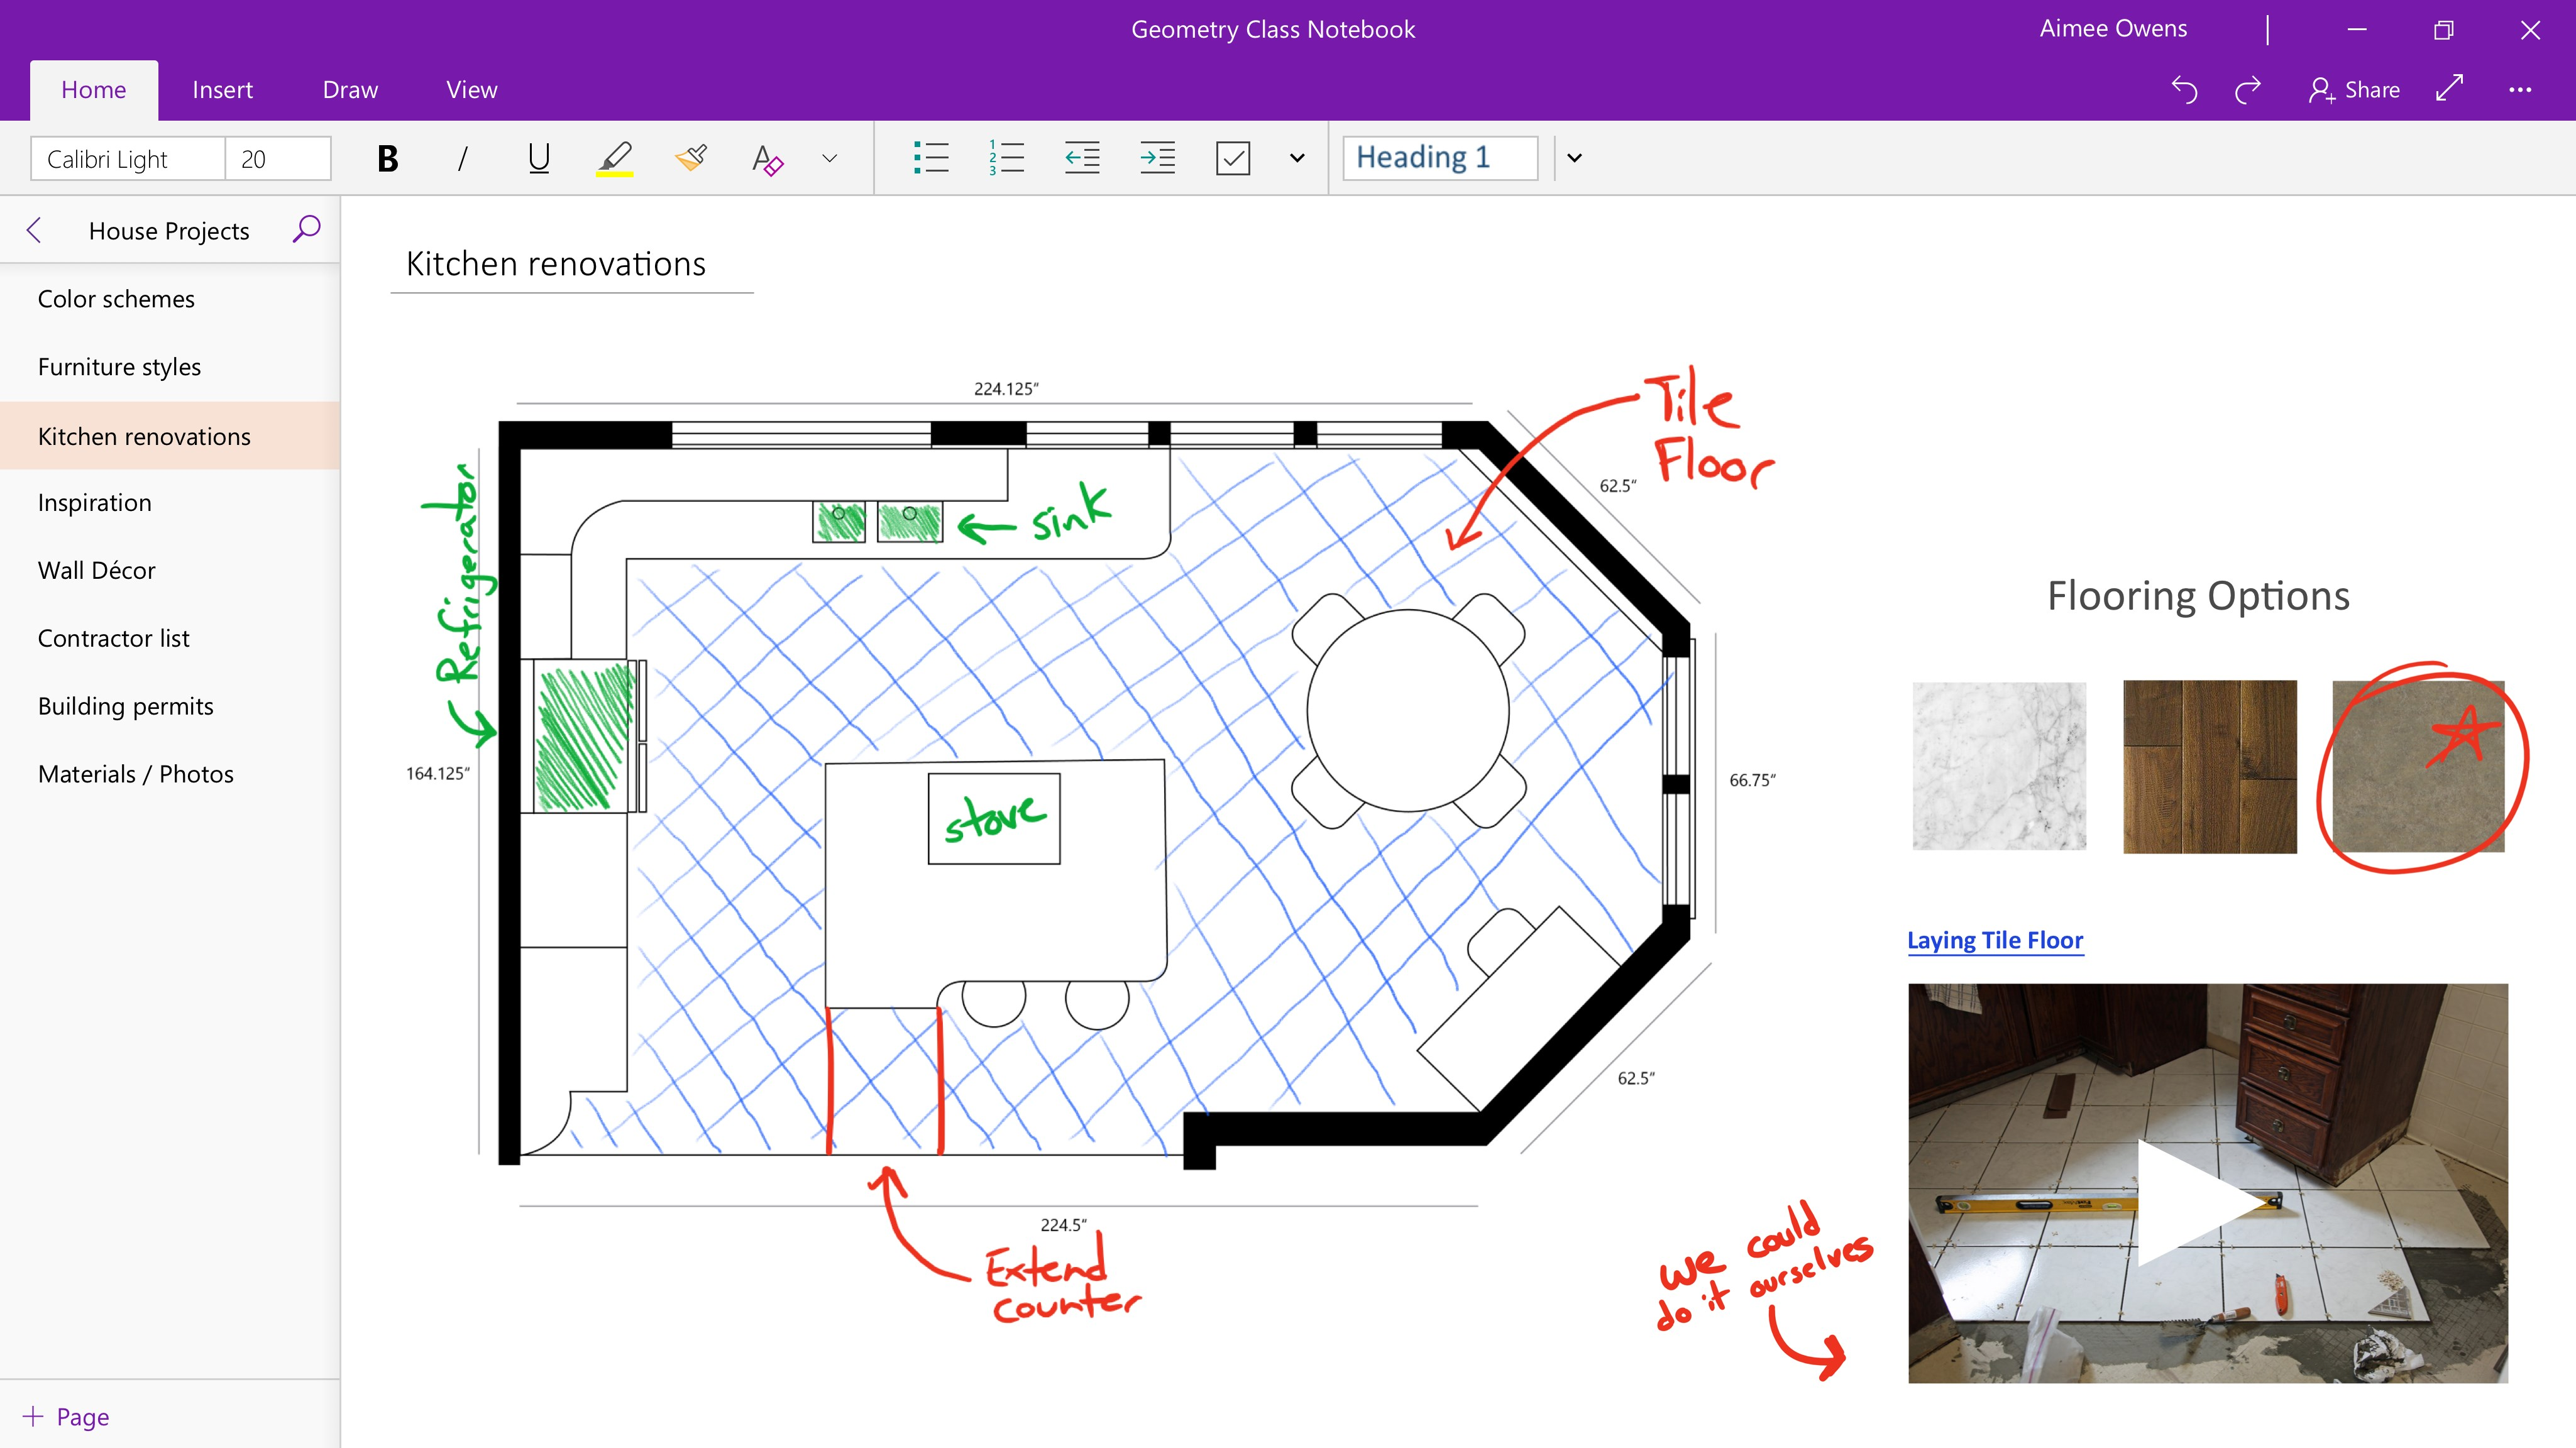 Drawing Lines In Onenote : Onenote for windows